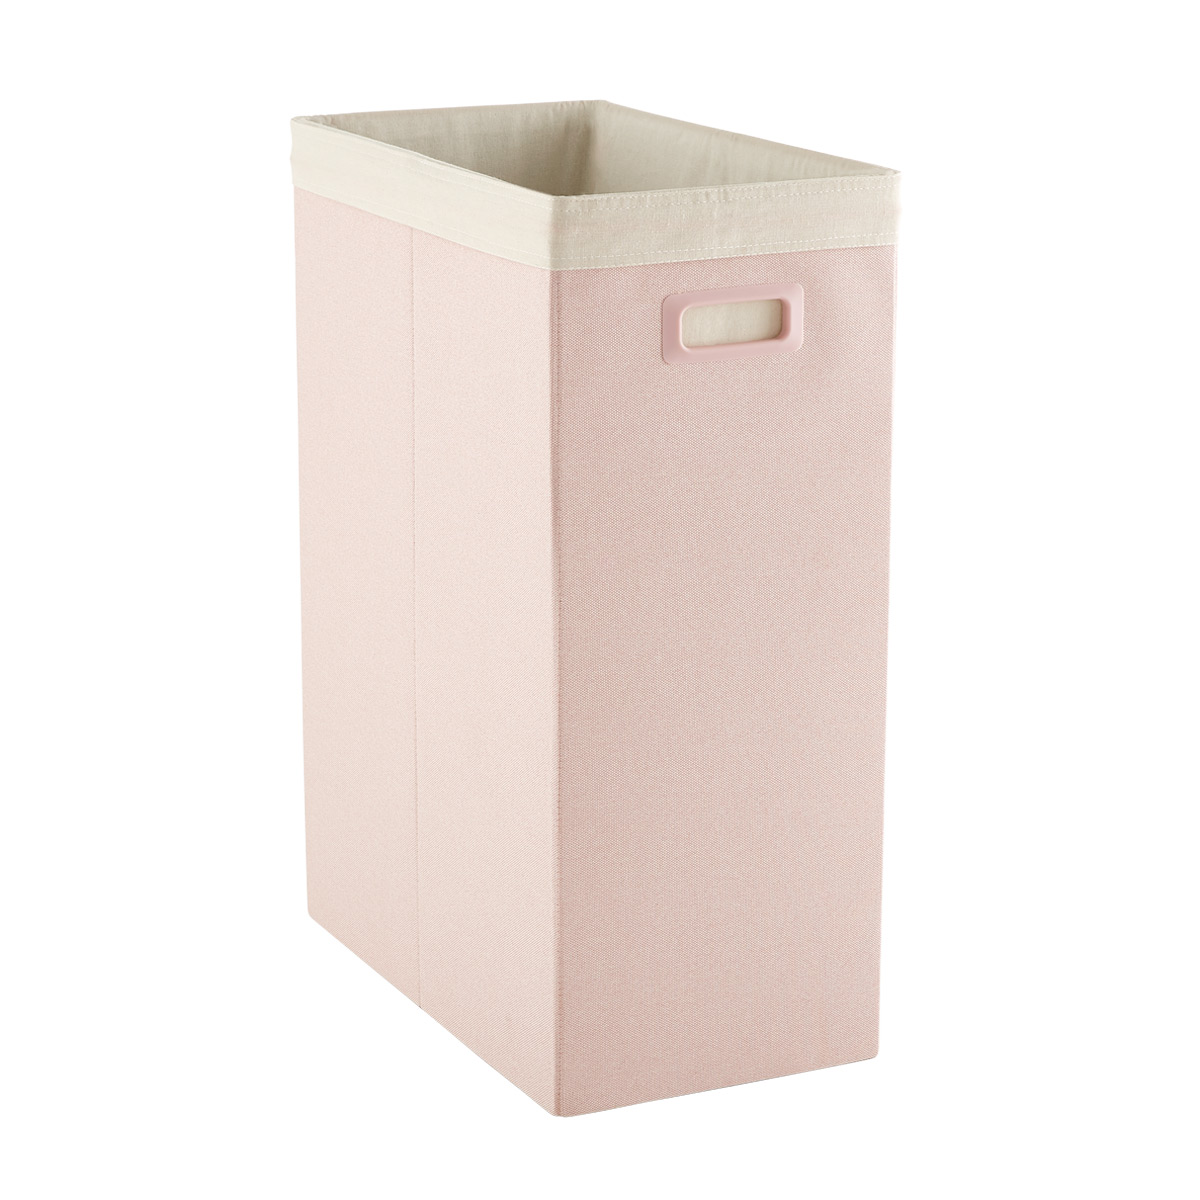 Closed Laundry Hamper Blush Pink Poppin Laundry Hamper With Lid The Container